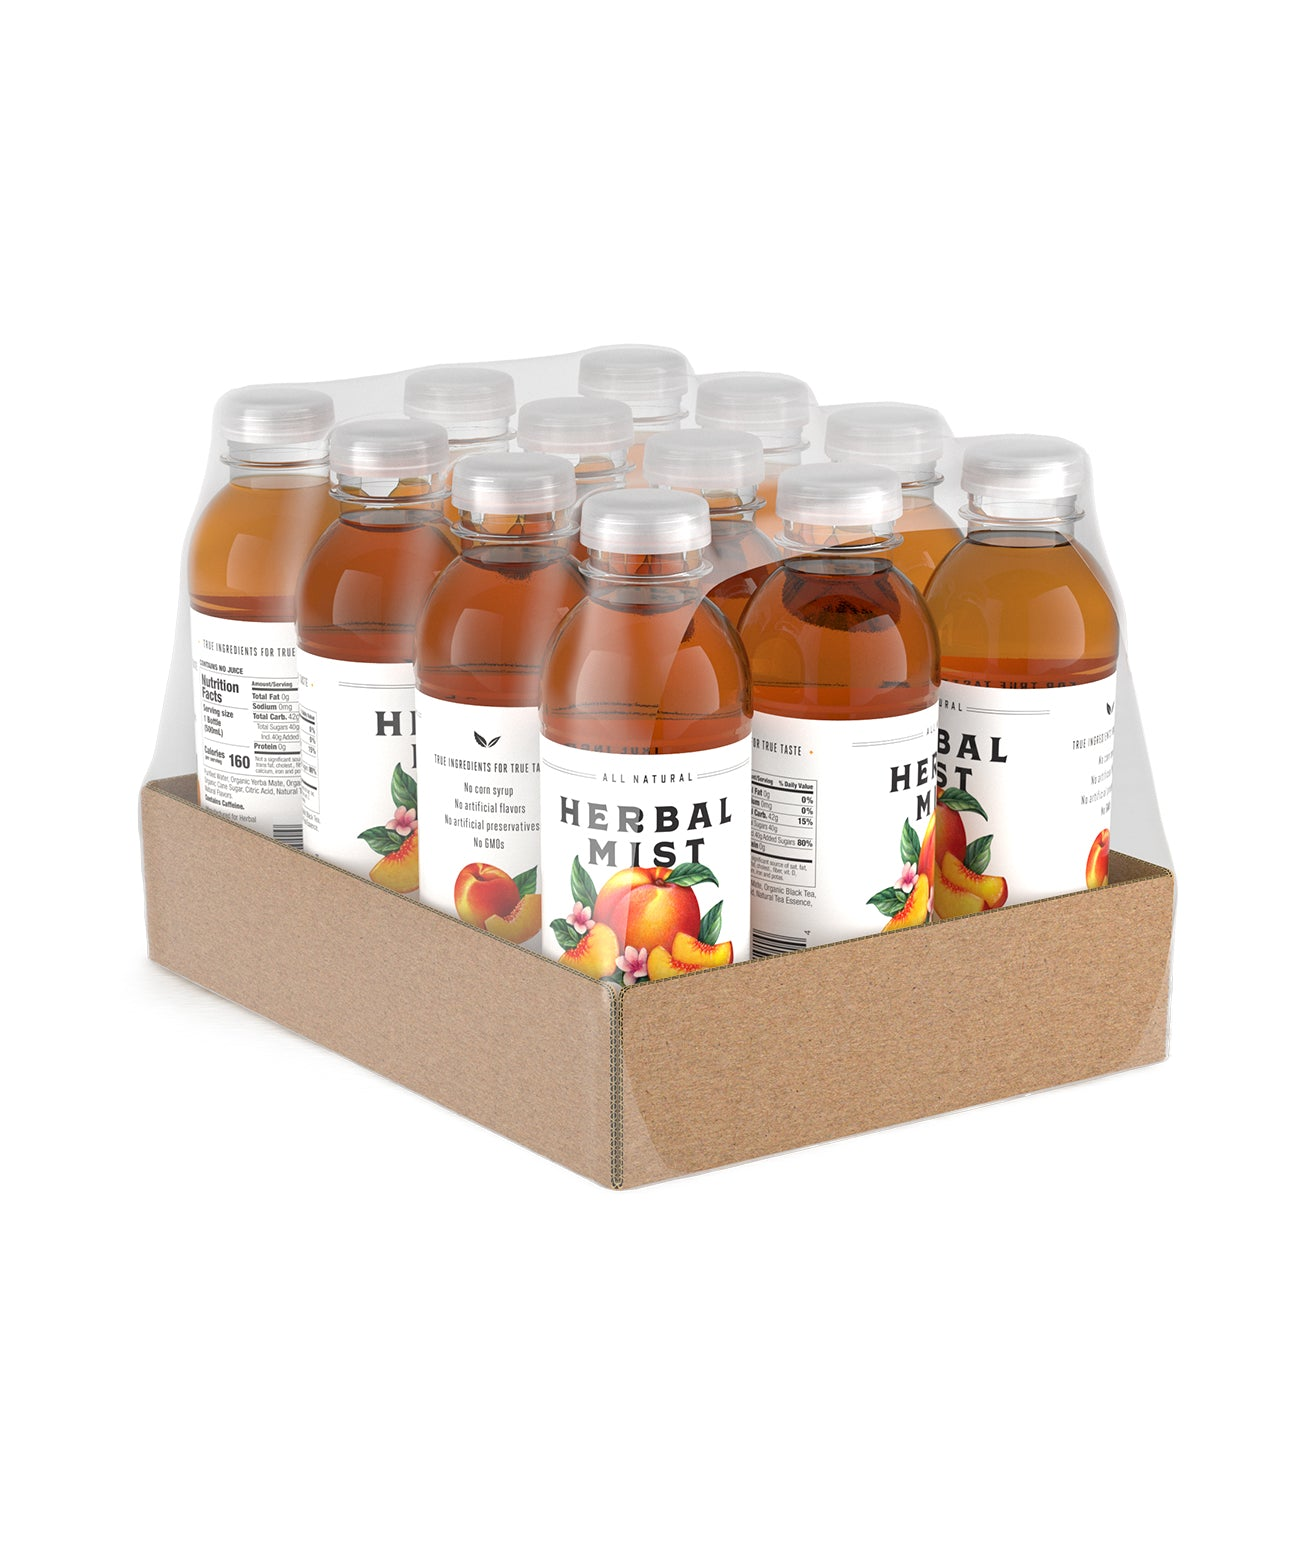 Peach Black Tea & Yerba Mate (12-Pack)